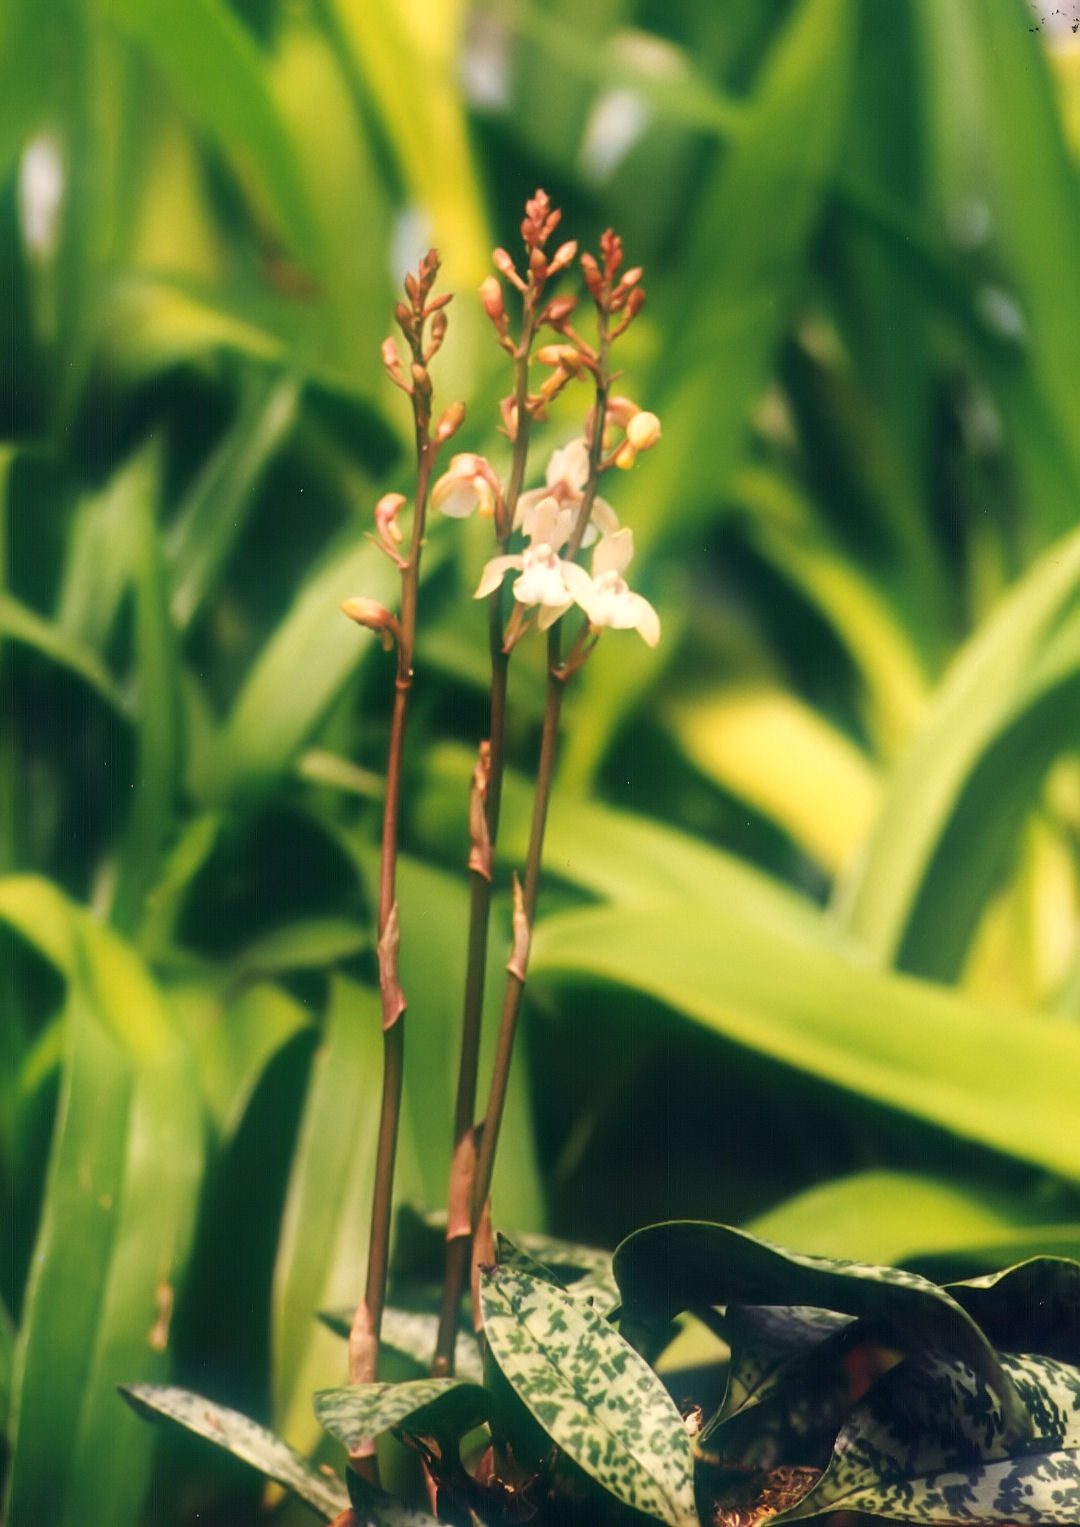 http://upload.wikimedia.org/wikipedia/commons/0/07/A_and_B_Larsen_orchids_-_Oeceoclades_maculata_451-3.jpg